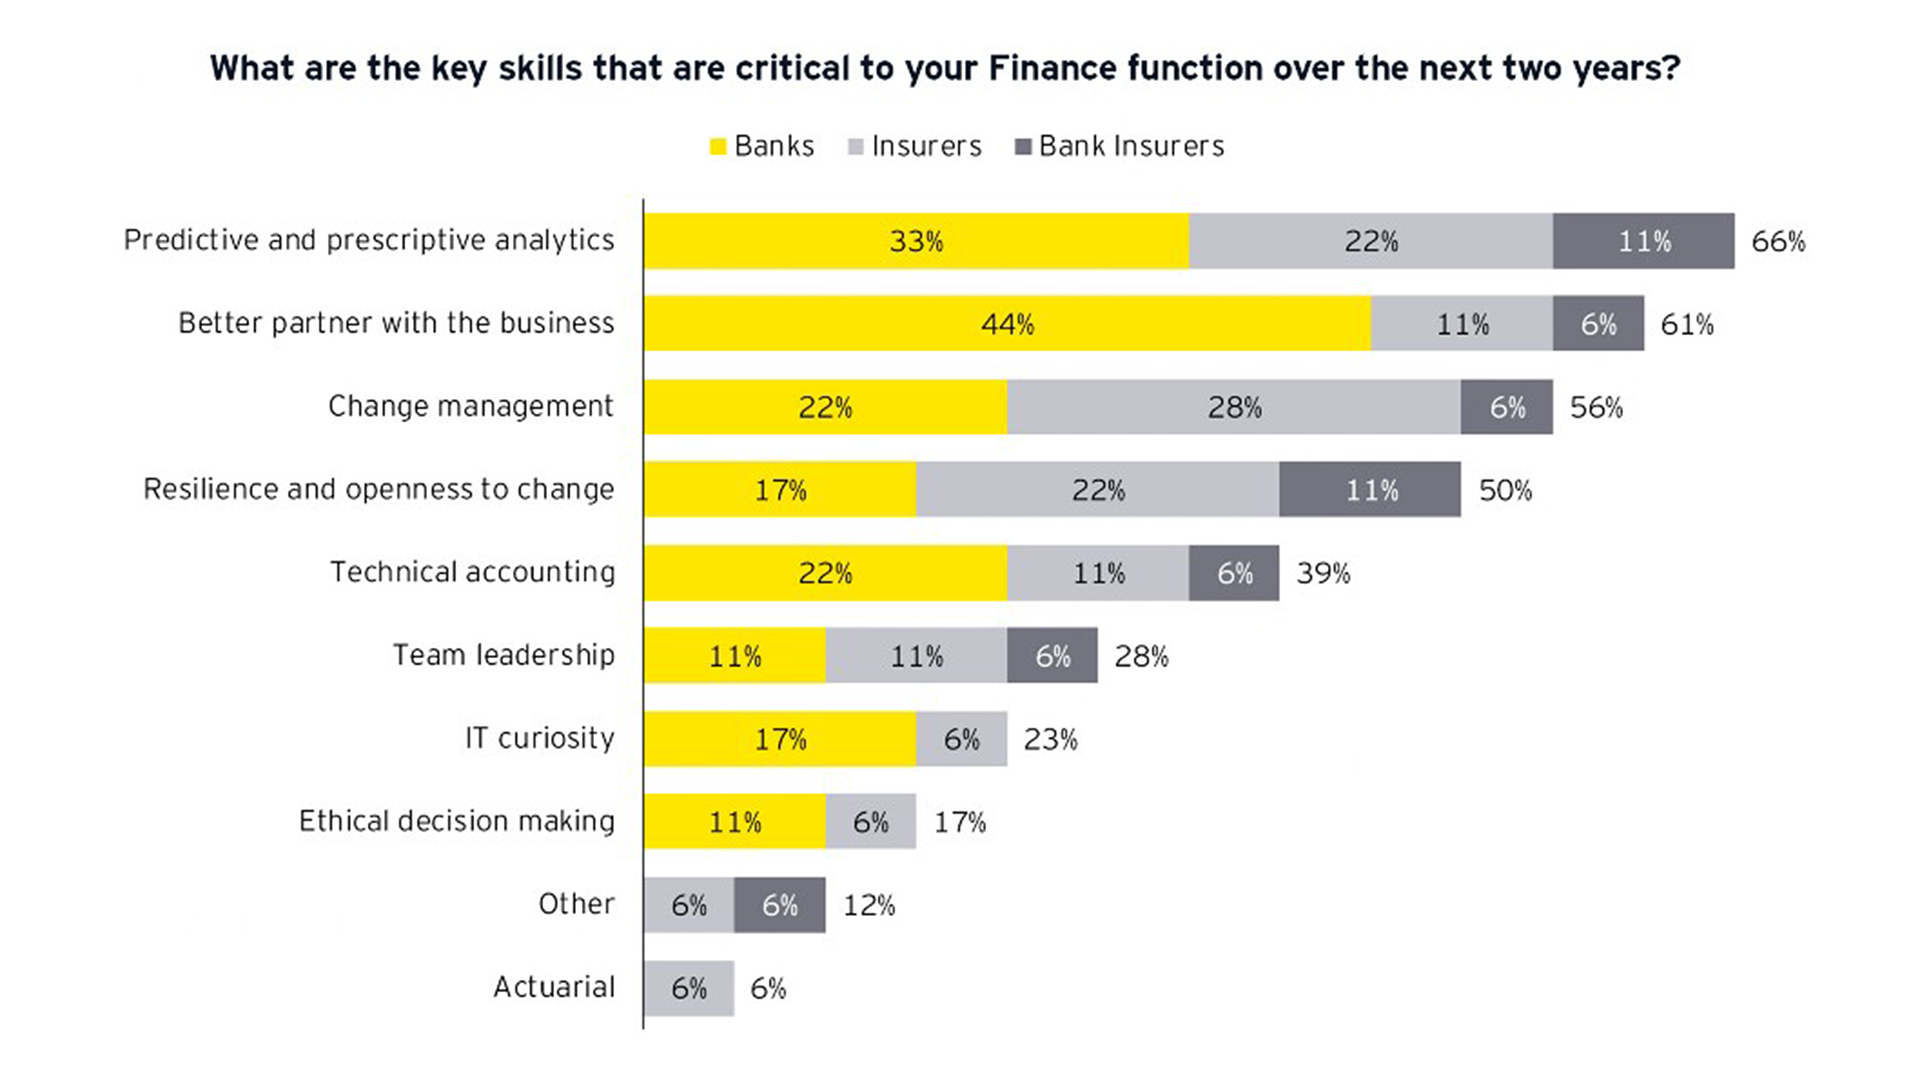 Graph: What are the key skills that are critical to your Finance function over the next two years?